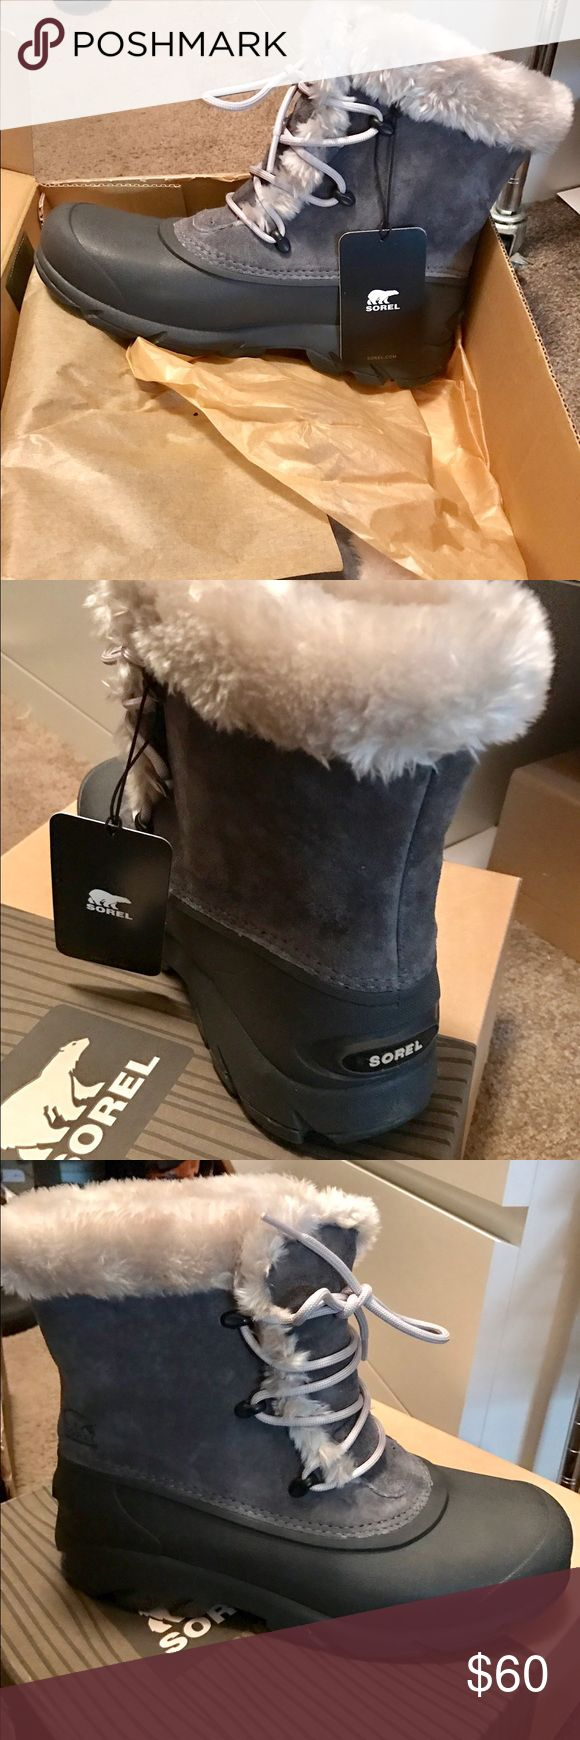 Sorel snow boots.. never been worn! New Sorel snow boots. Charcoal grey, very comfortable. Too big for me. Sorel Shoes Winter & Rain Boots